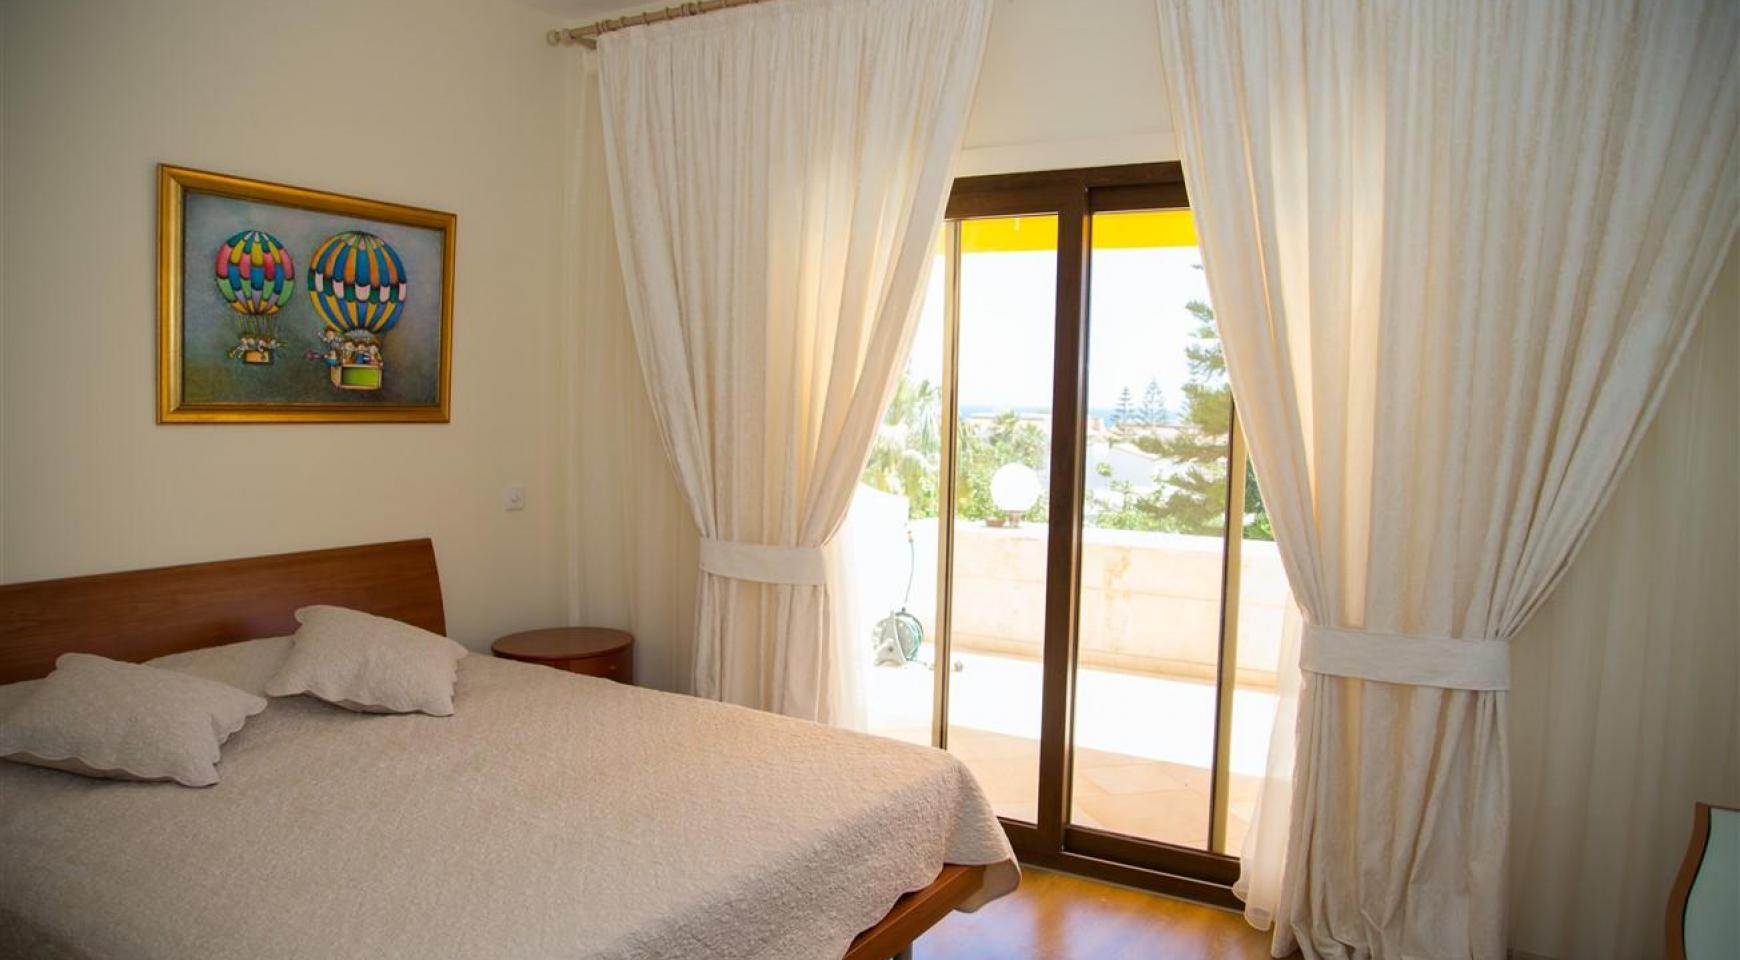 Cozy and Spacious 3 Bedroom Apartment Thera 102 by the Sea - 18